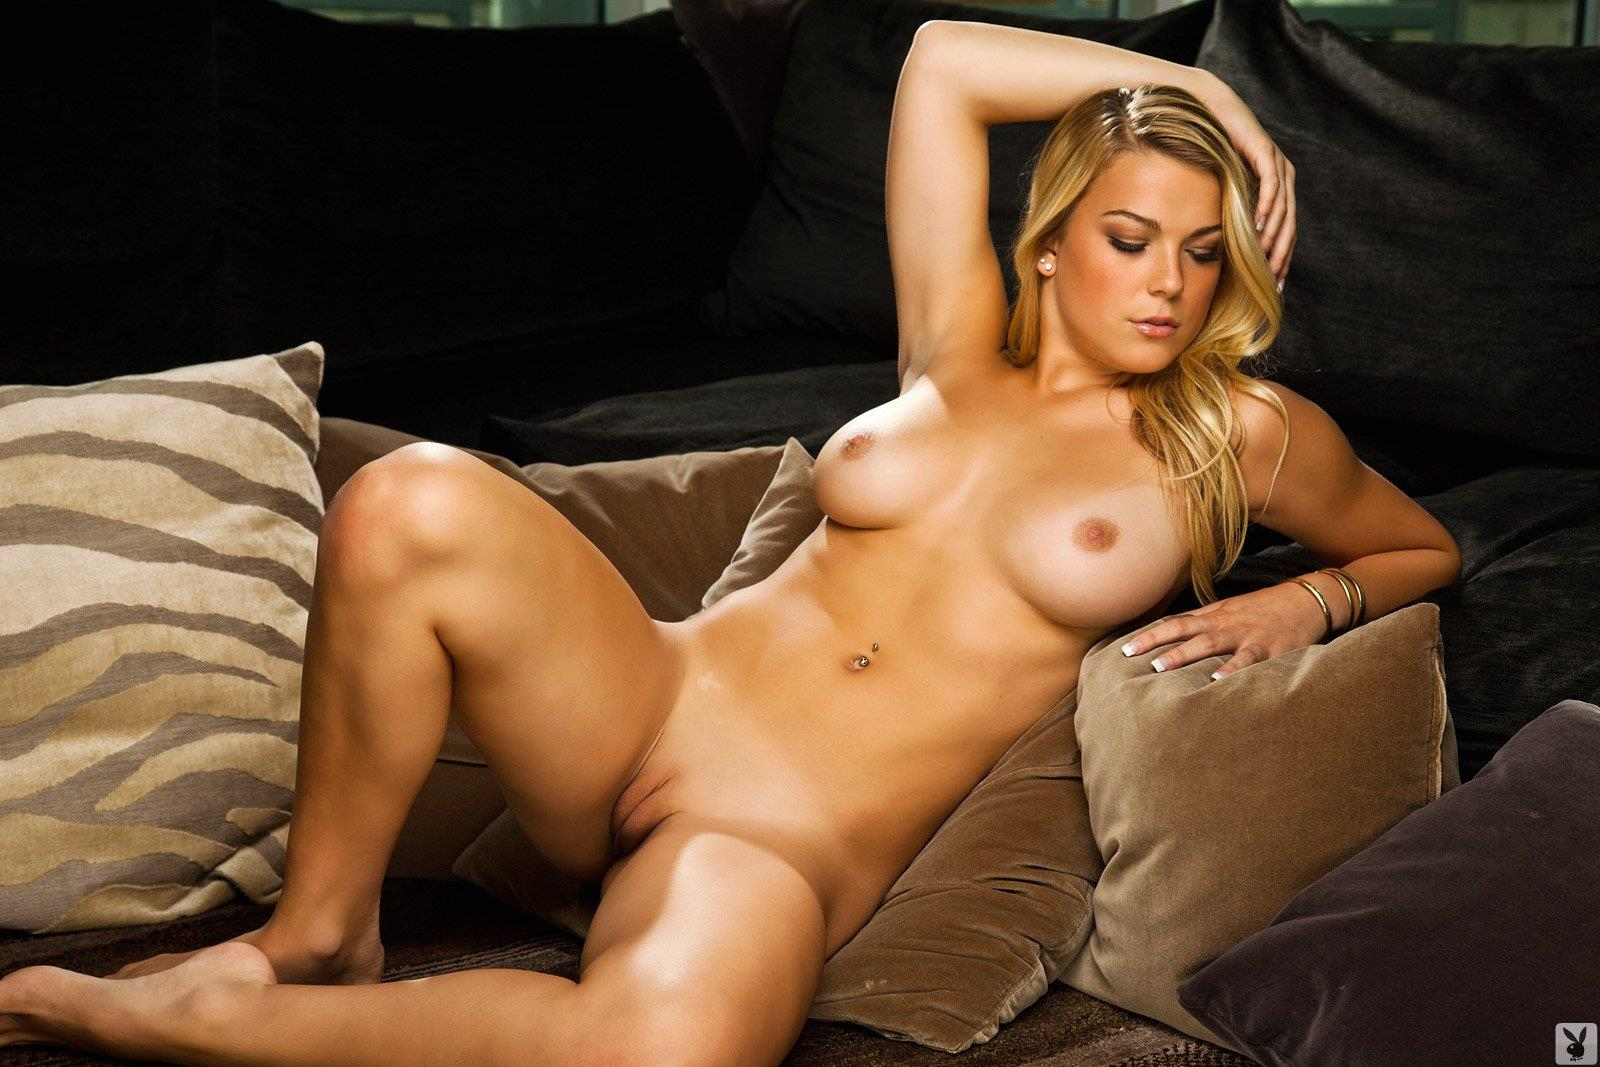 Taylor Corley Nude Pictures. Rating = 9.07/10